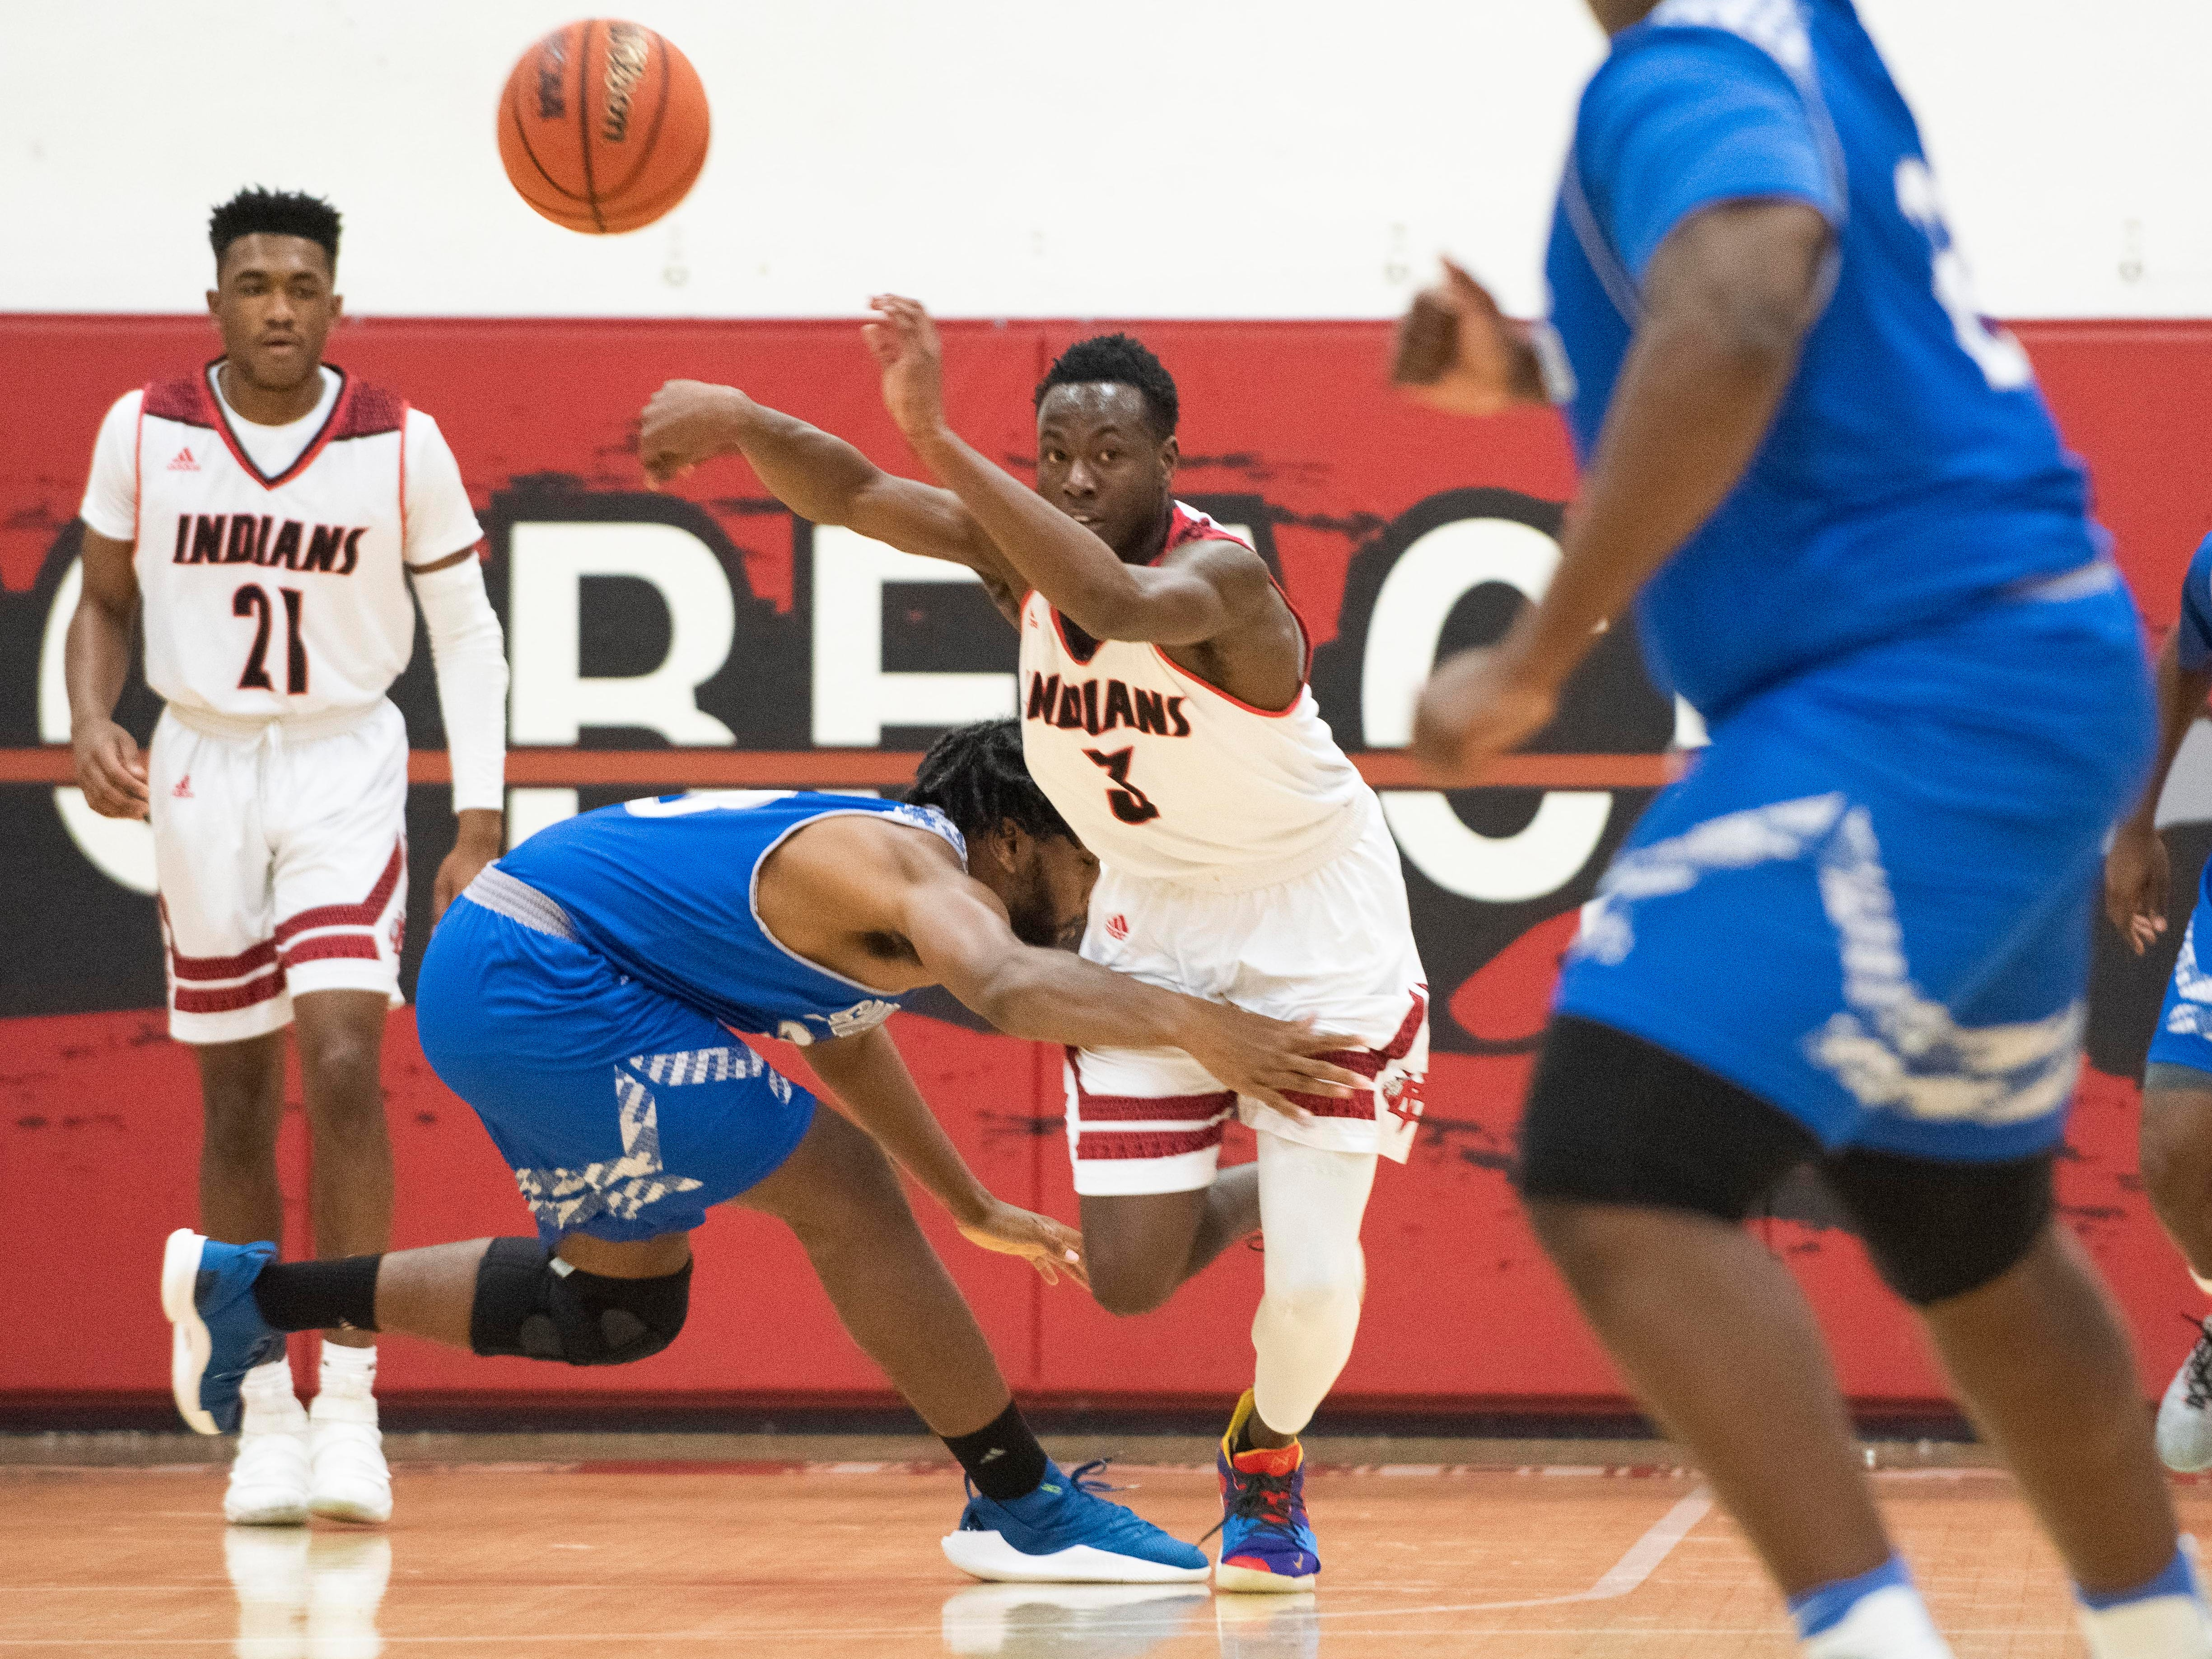 Vero Beach's Tommie Lewis attempts to make a pass after a loose ball during the boys high school basketball game against Sebastian River on Tuesday, Feb. 5, 2019, at Vero Beach High School.